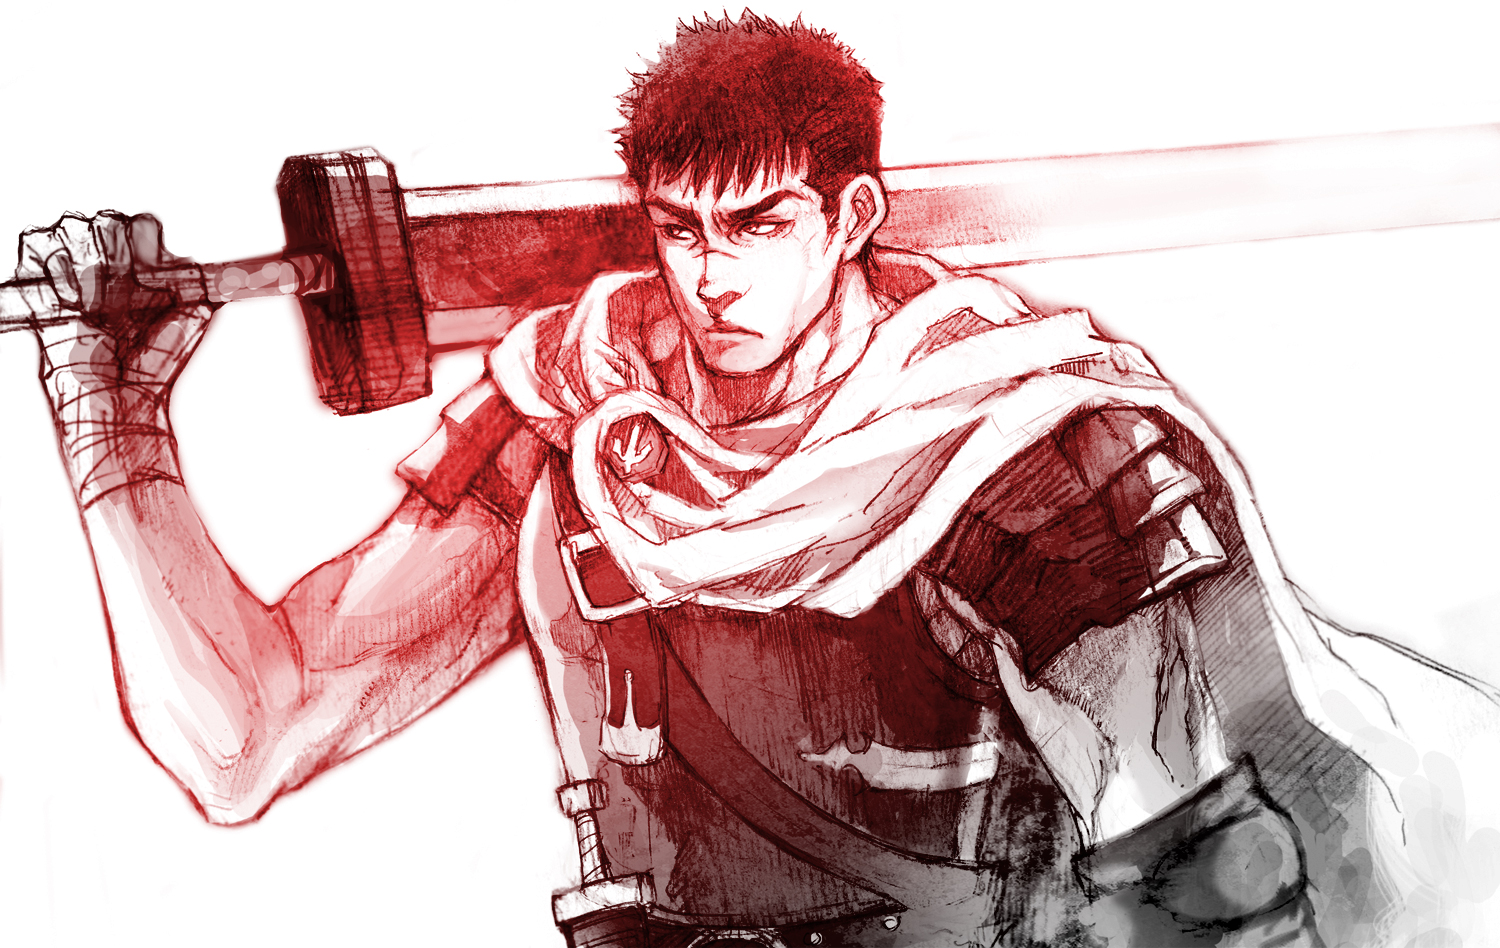 Fate/Destiny Order Powerful Glory Of The Immortal Gods Of Unbreakable Hope Guts.full.1149385